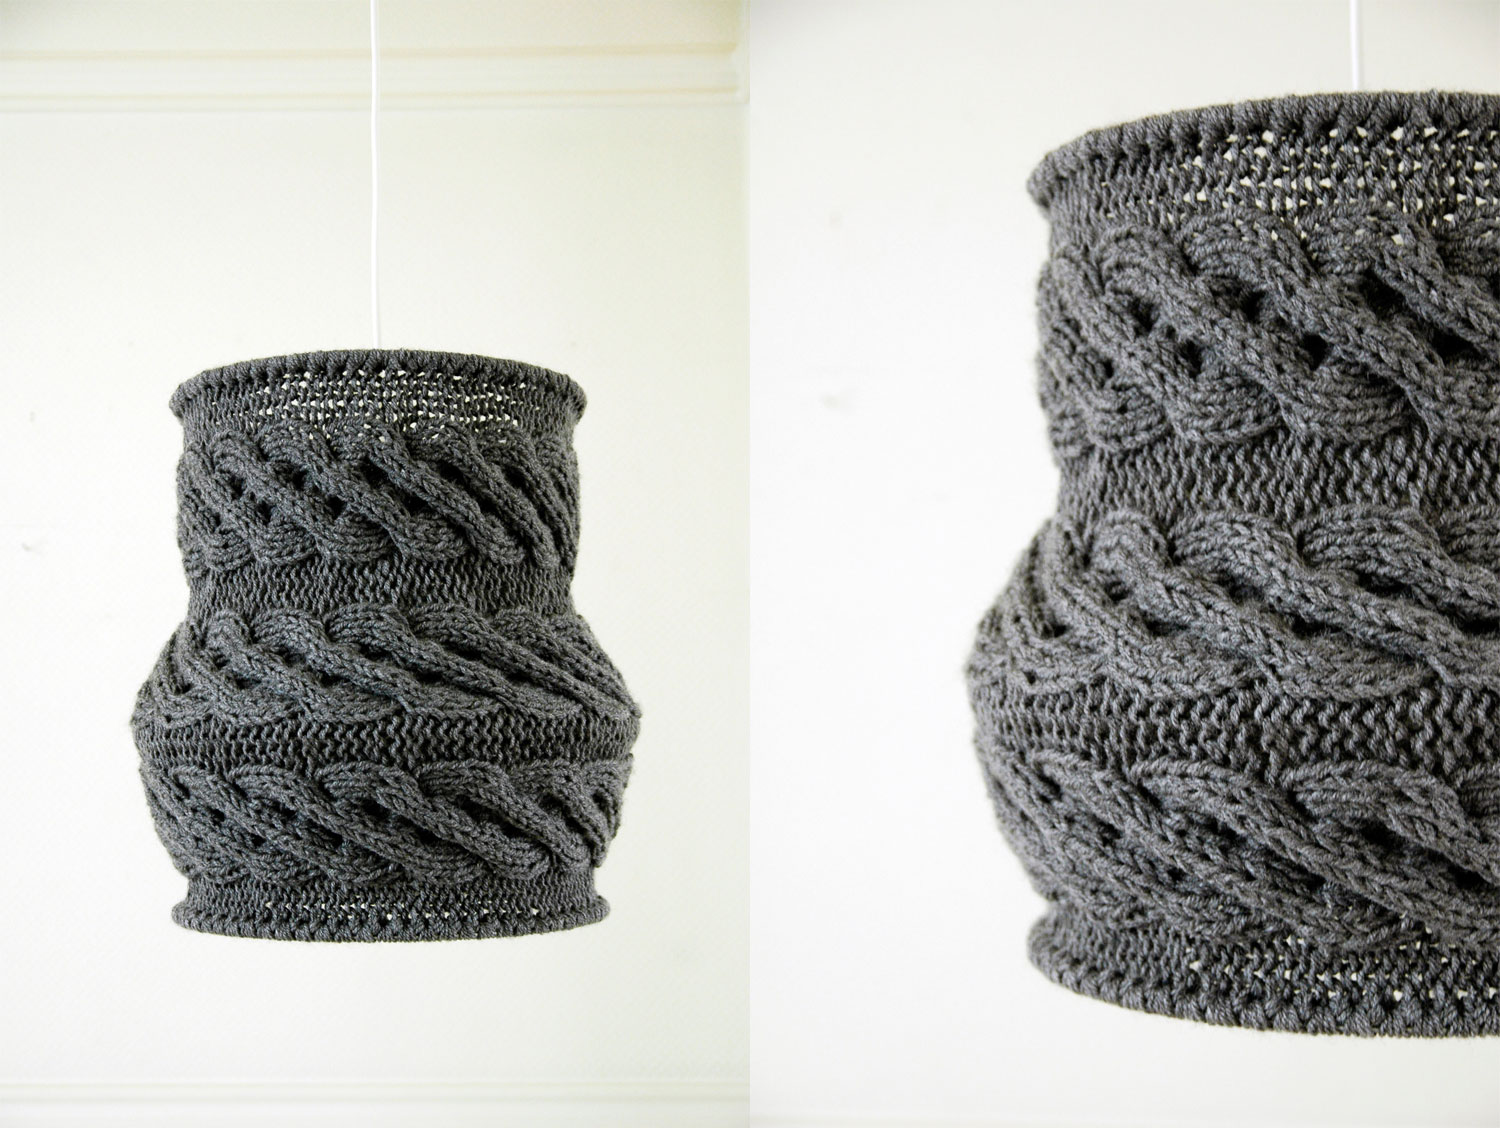 Wonderful Designed As A Pendant Lampshade. Very Fashionable. Made Of Soft, Cozy, 100%  Acrylic Yarn. Nicely Admit Light, Each Evening Will Be ...